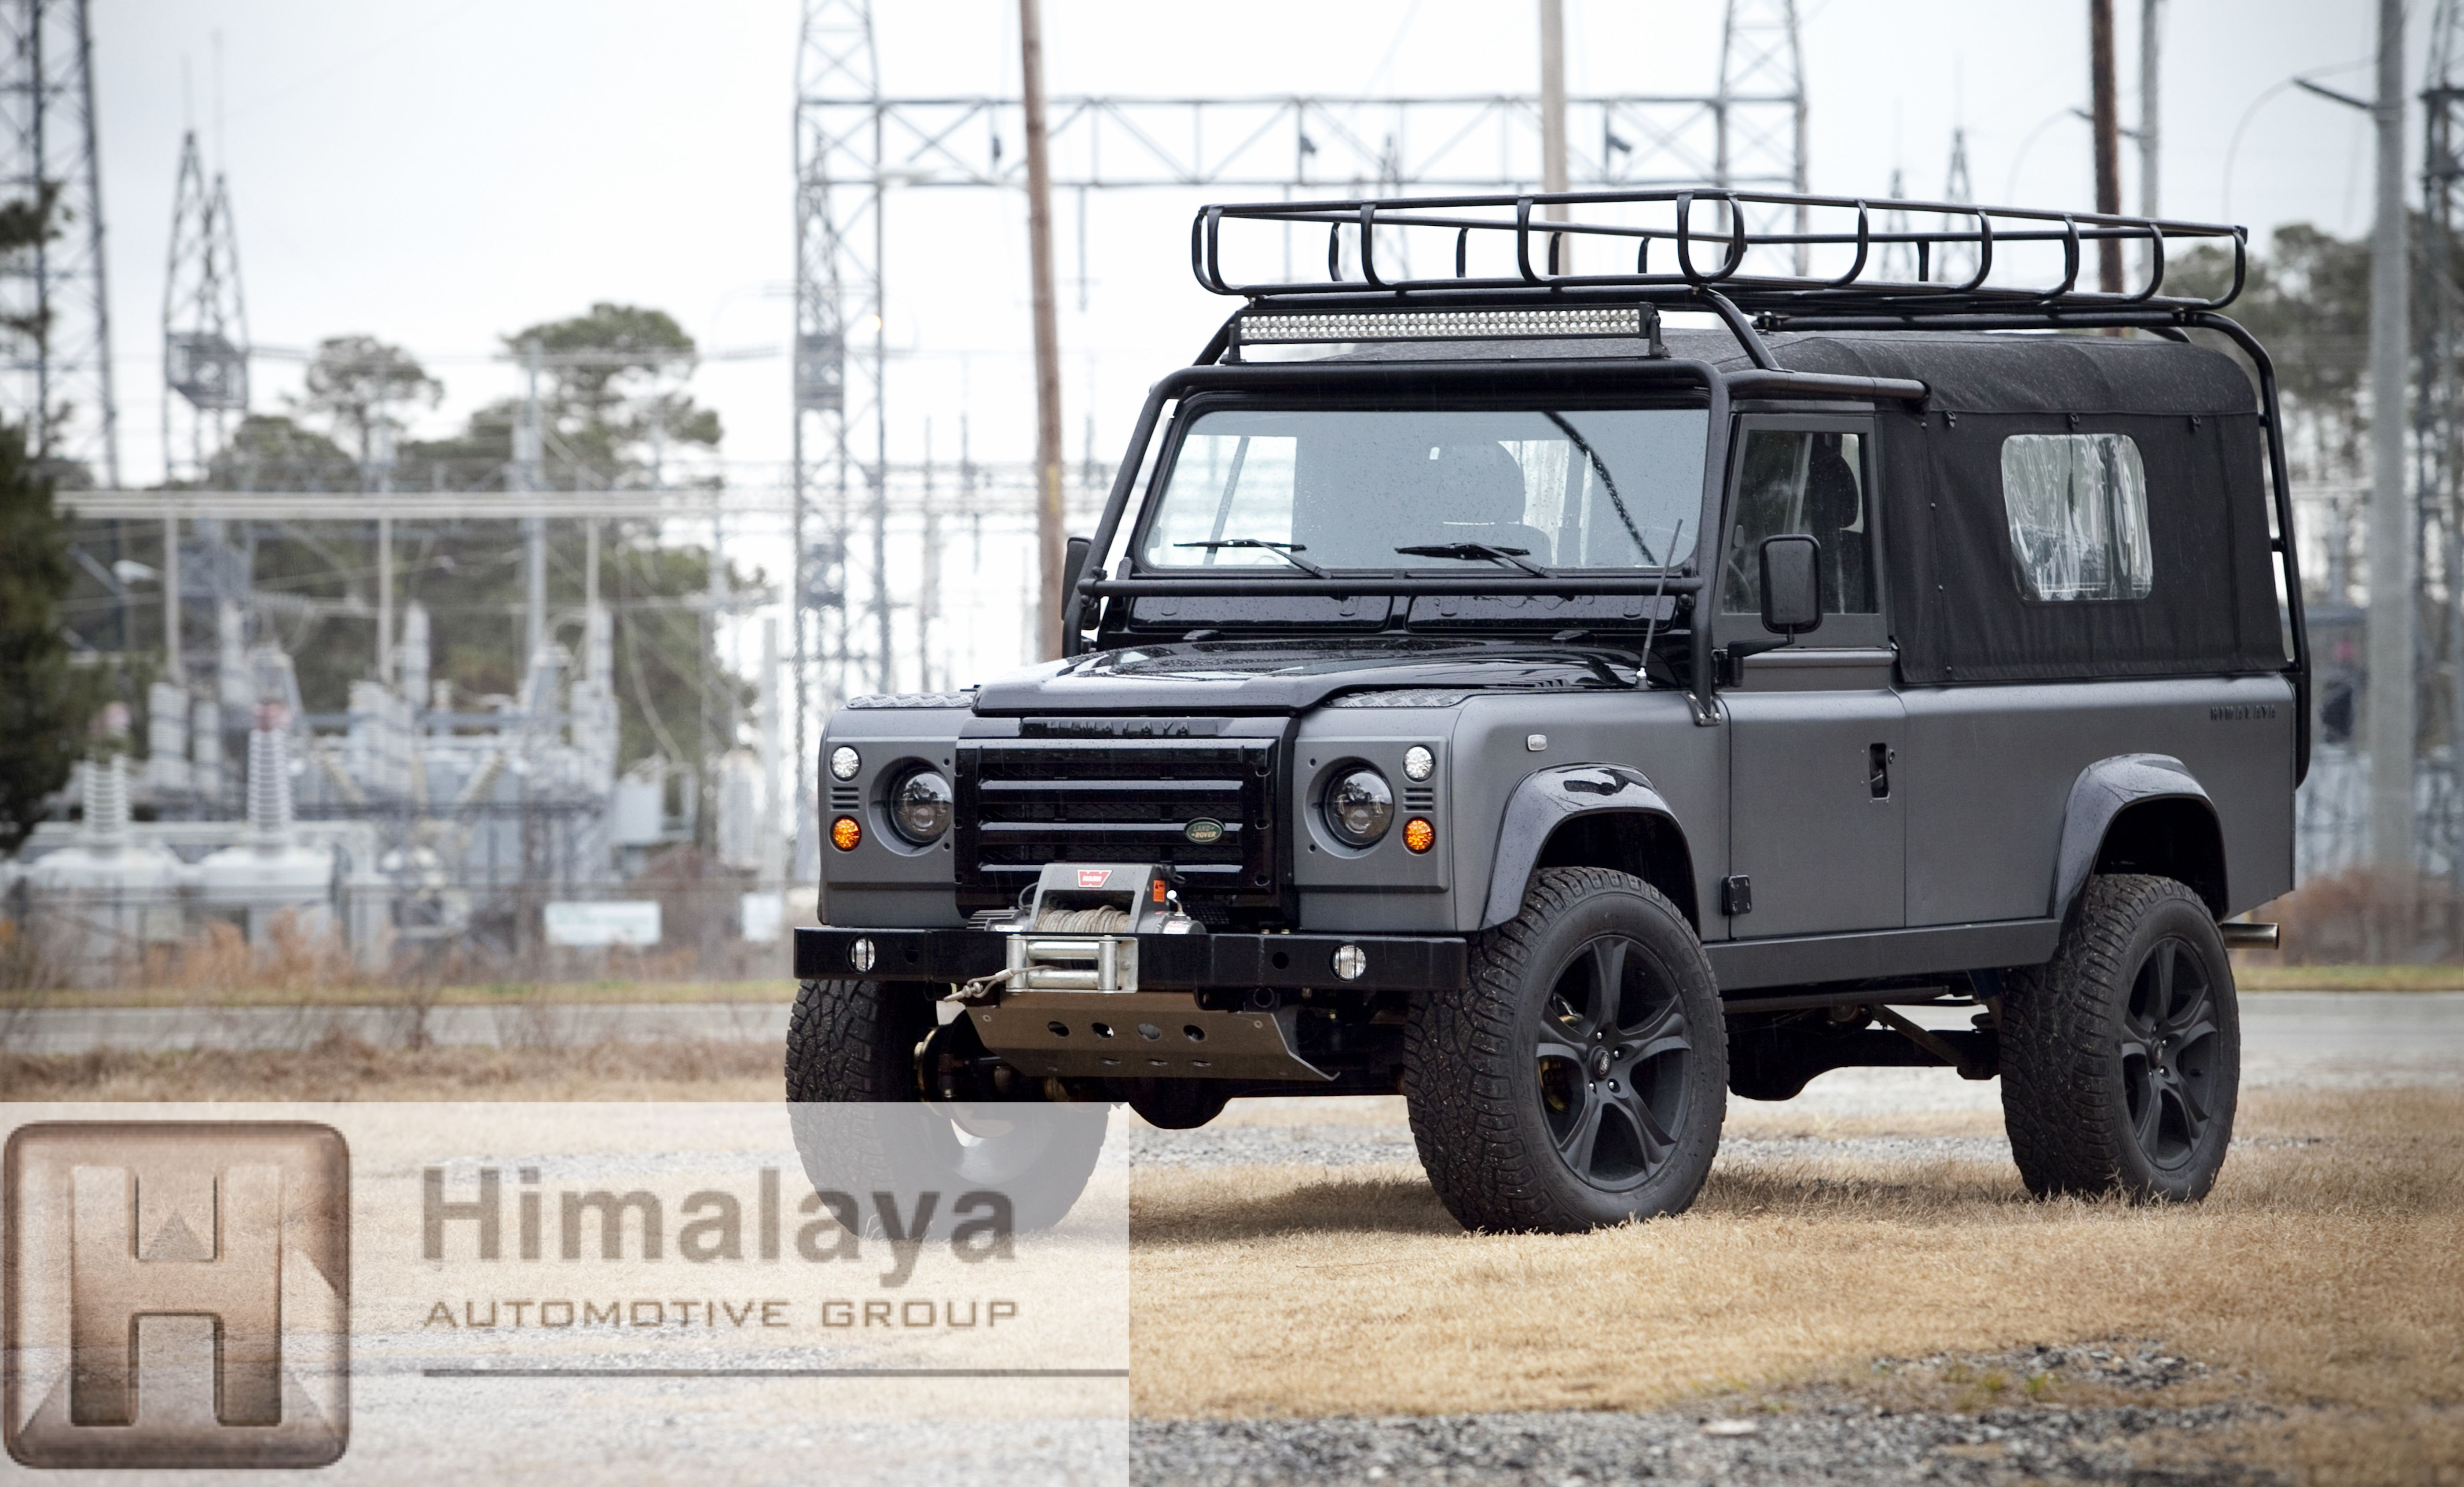 himalaya 4x4 custom land rover himalaya 4x4 pinterest land rovers 4x4 and land rover defender. Black Bedroom Furniture Sets. Home Design Ideas